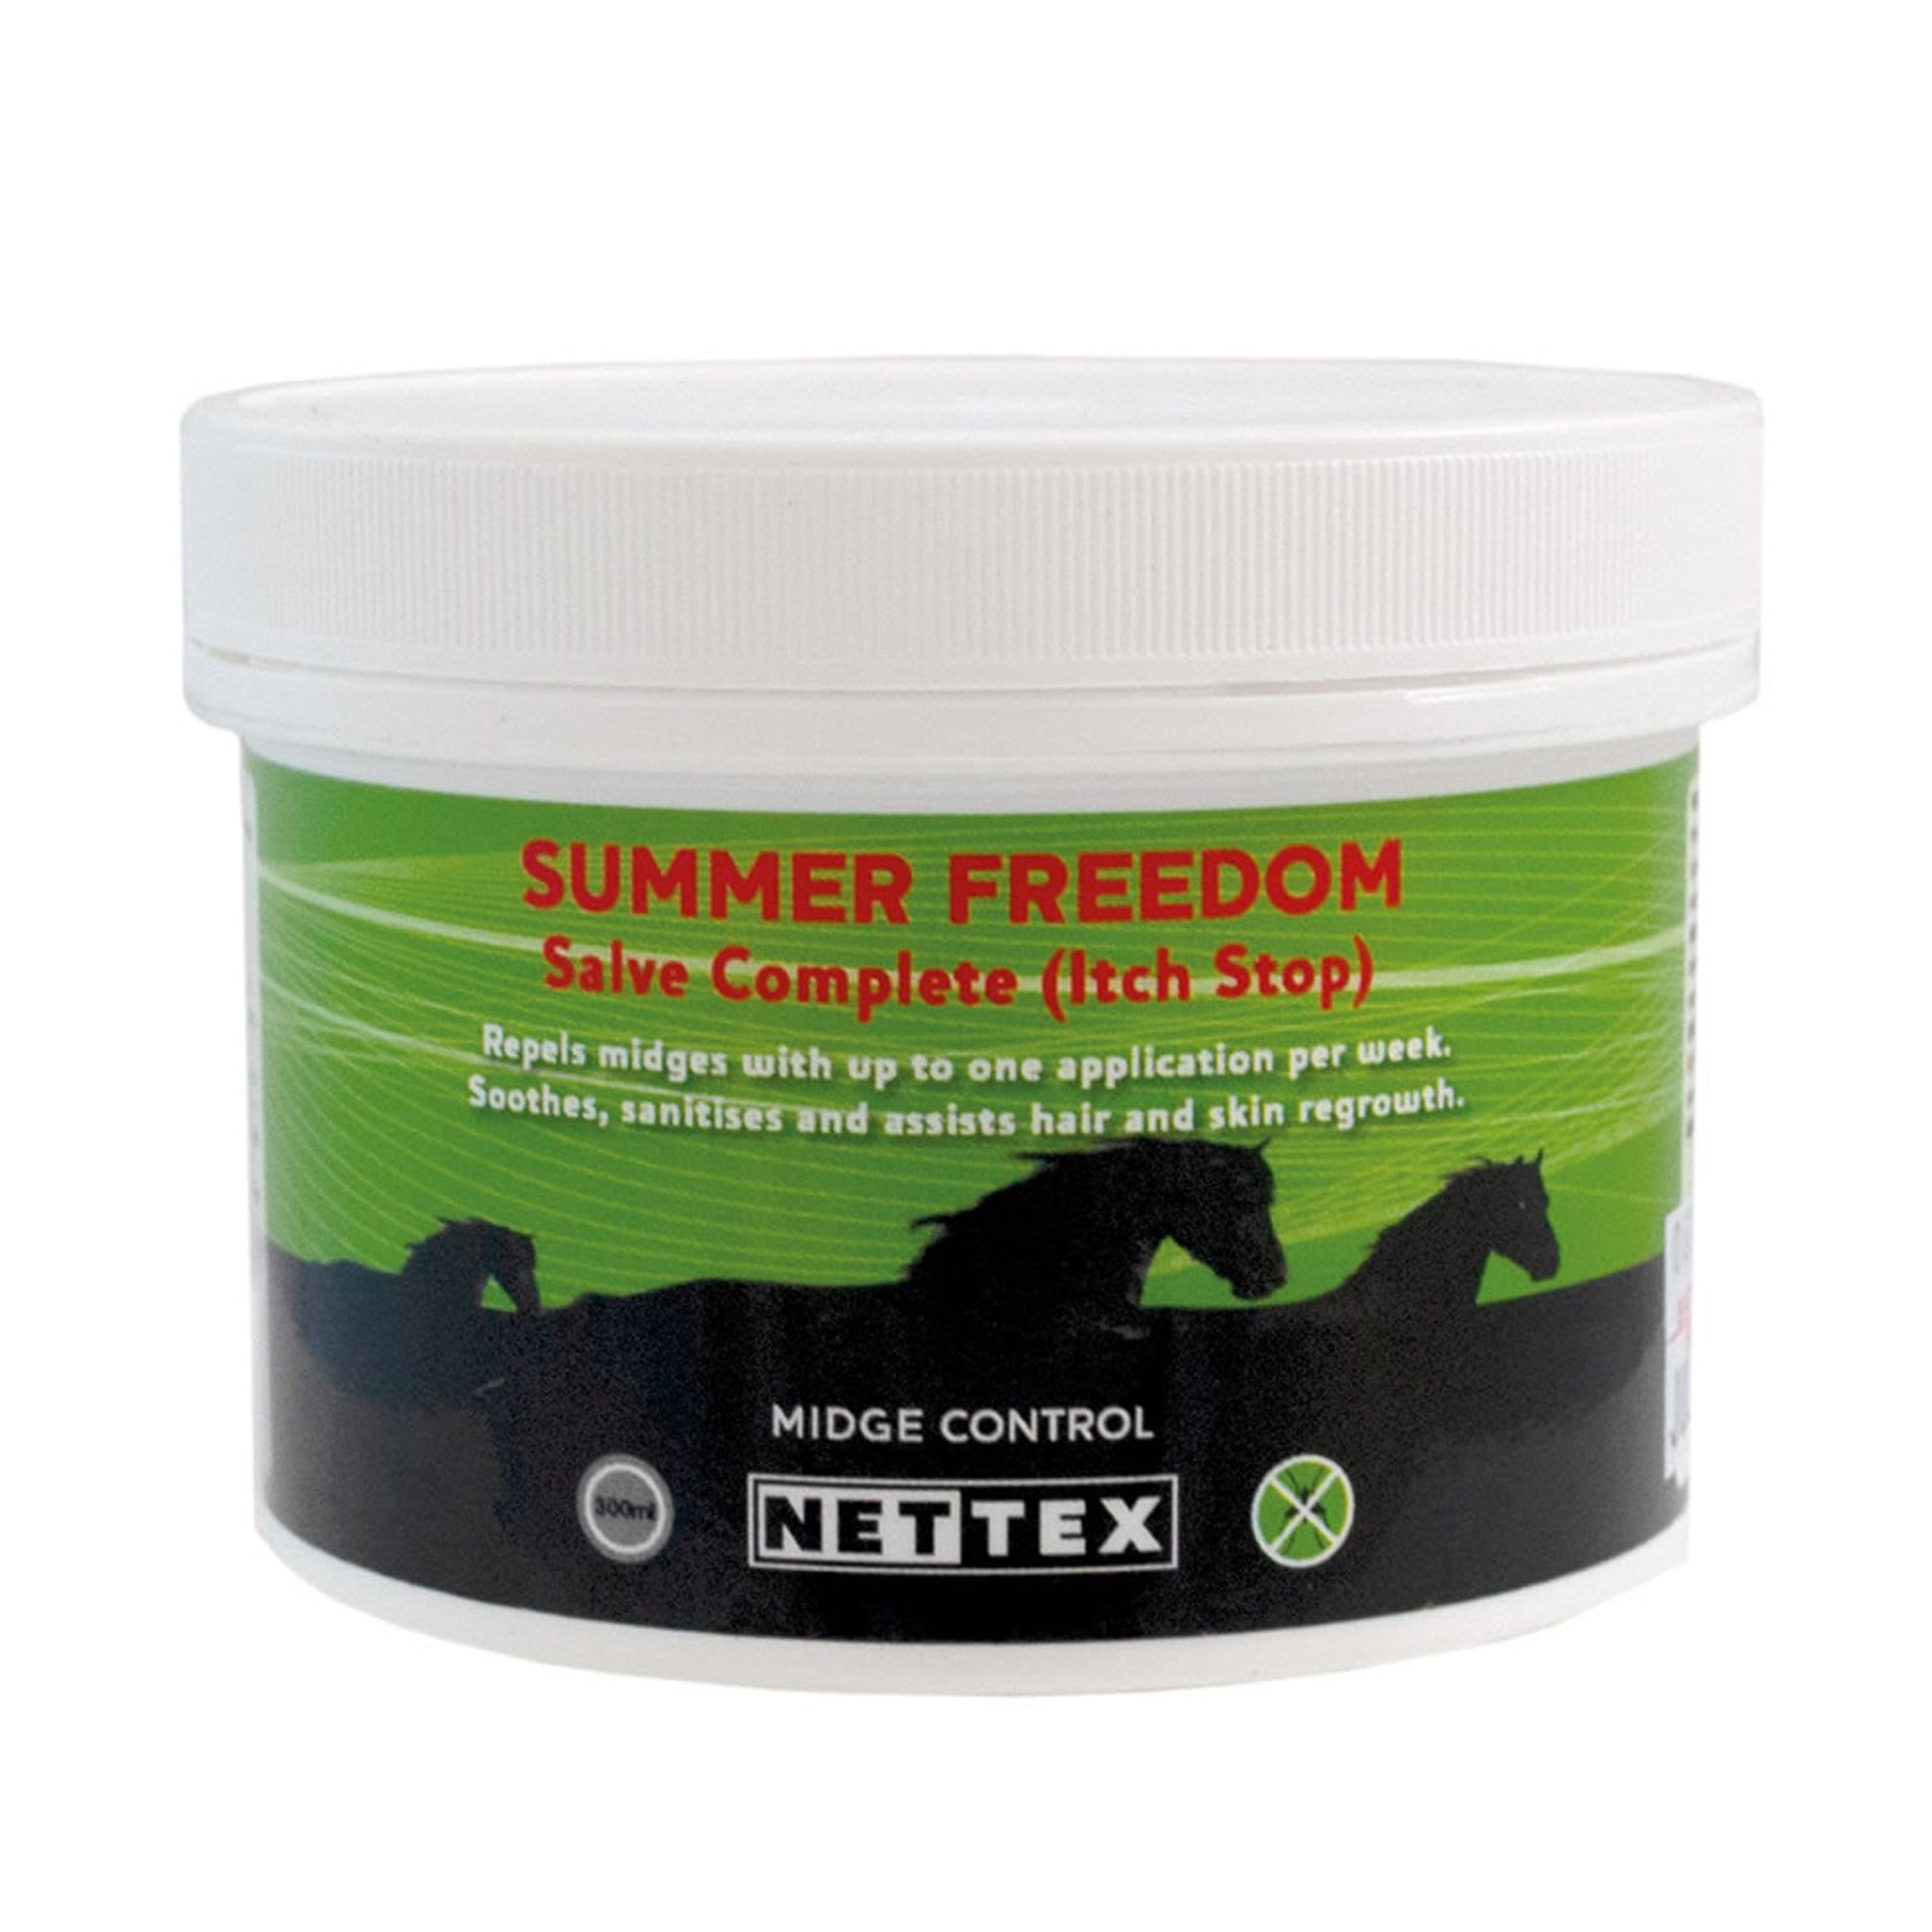 Nettex Summer Freedom Salve Complete 300ml